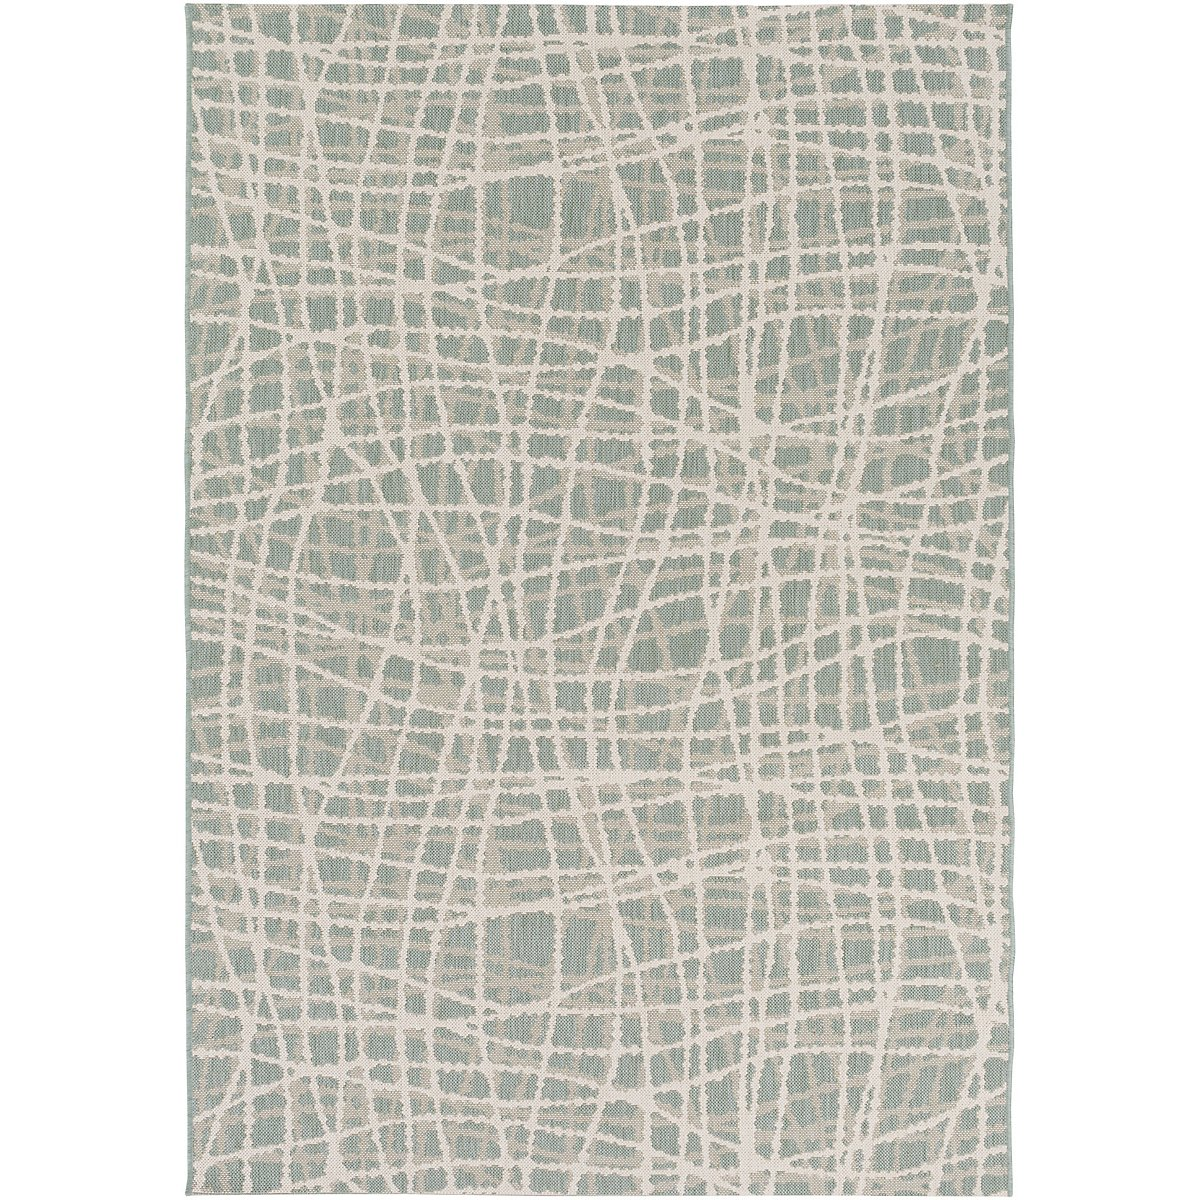 Terrace Blue Indoor/Outdoor 8x10 Area Rug